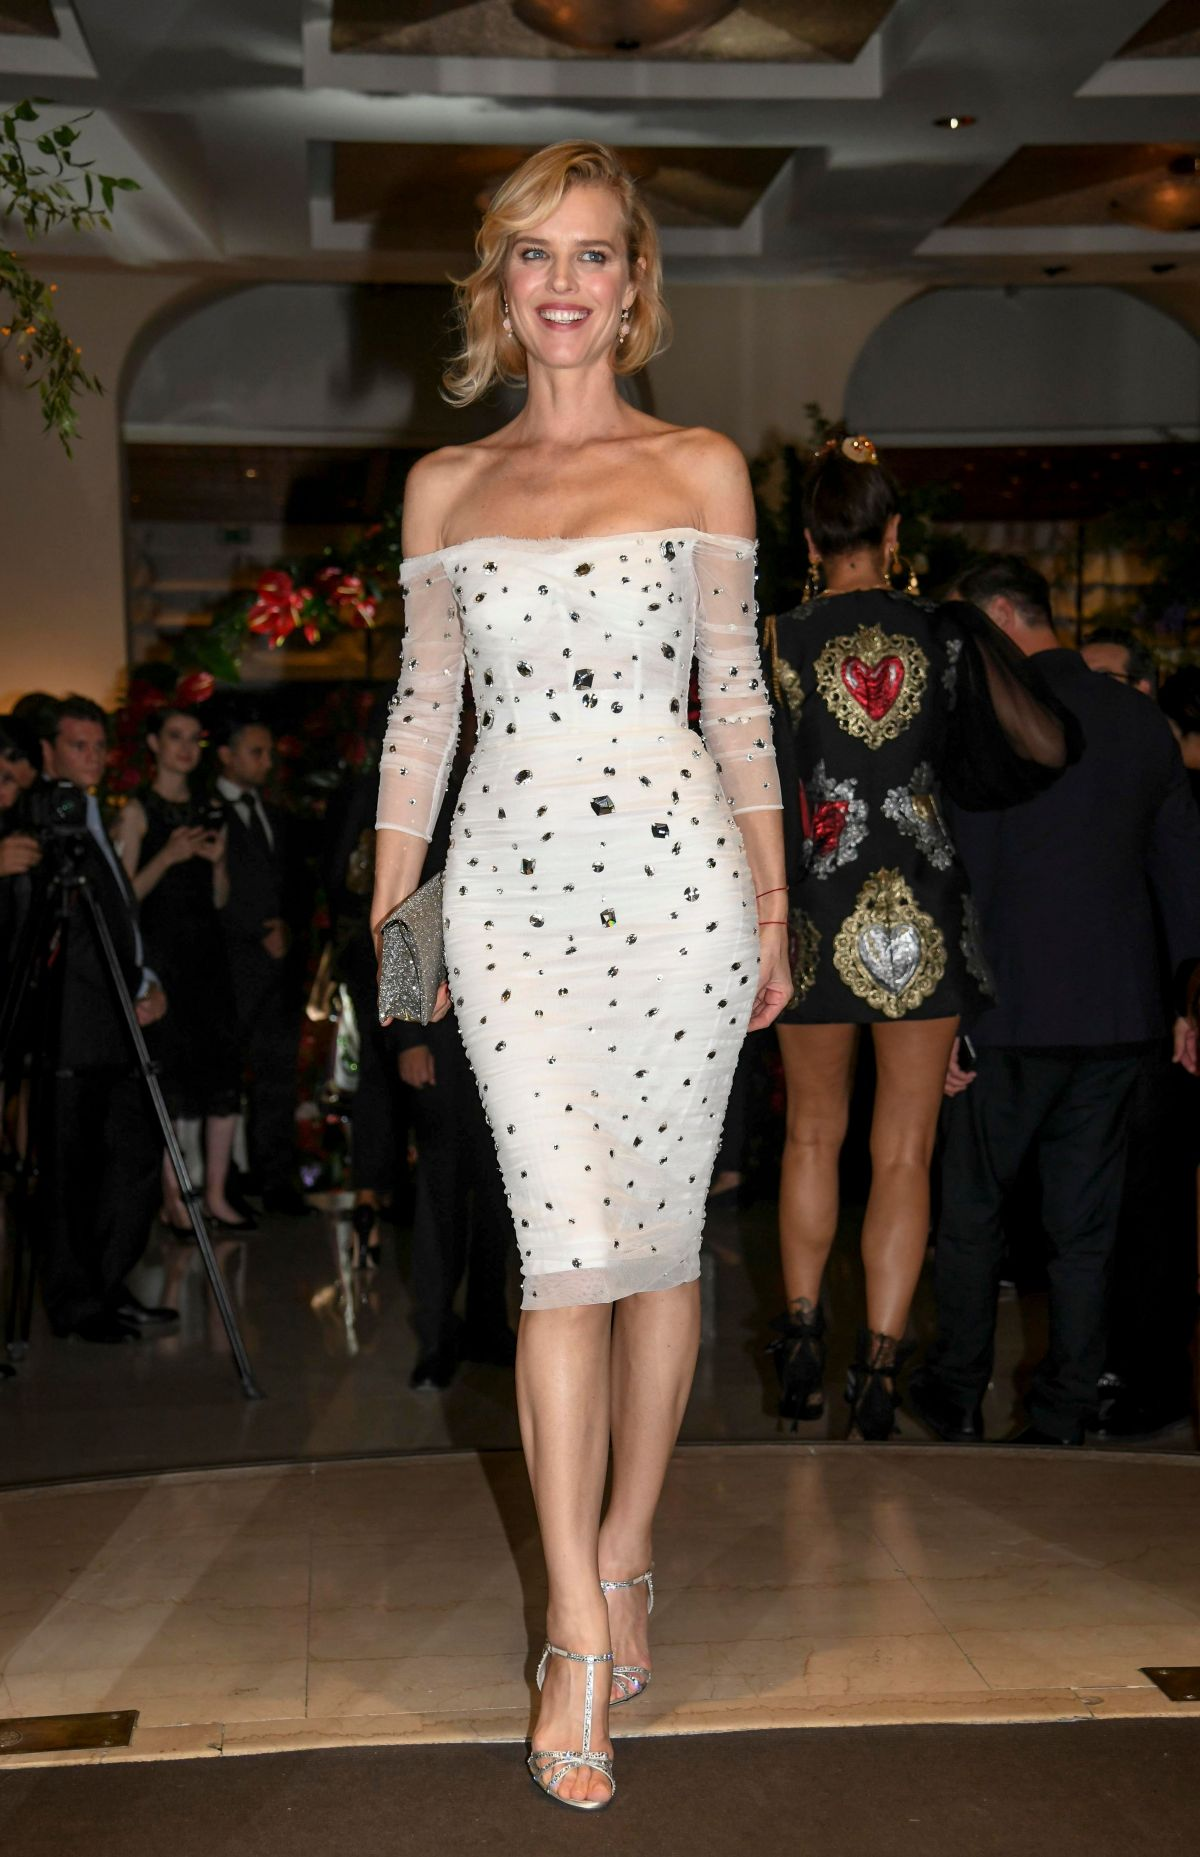 Eva Herzigova Party Dress - Eva Herzigova Party Dress